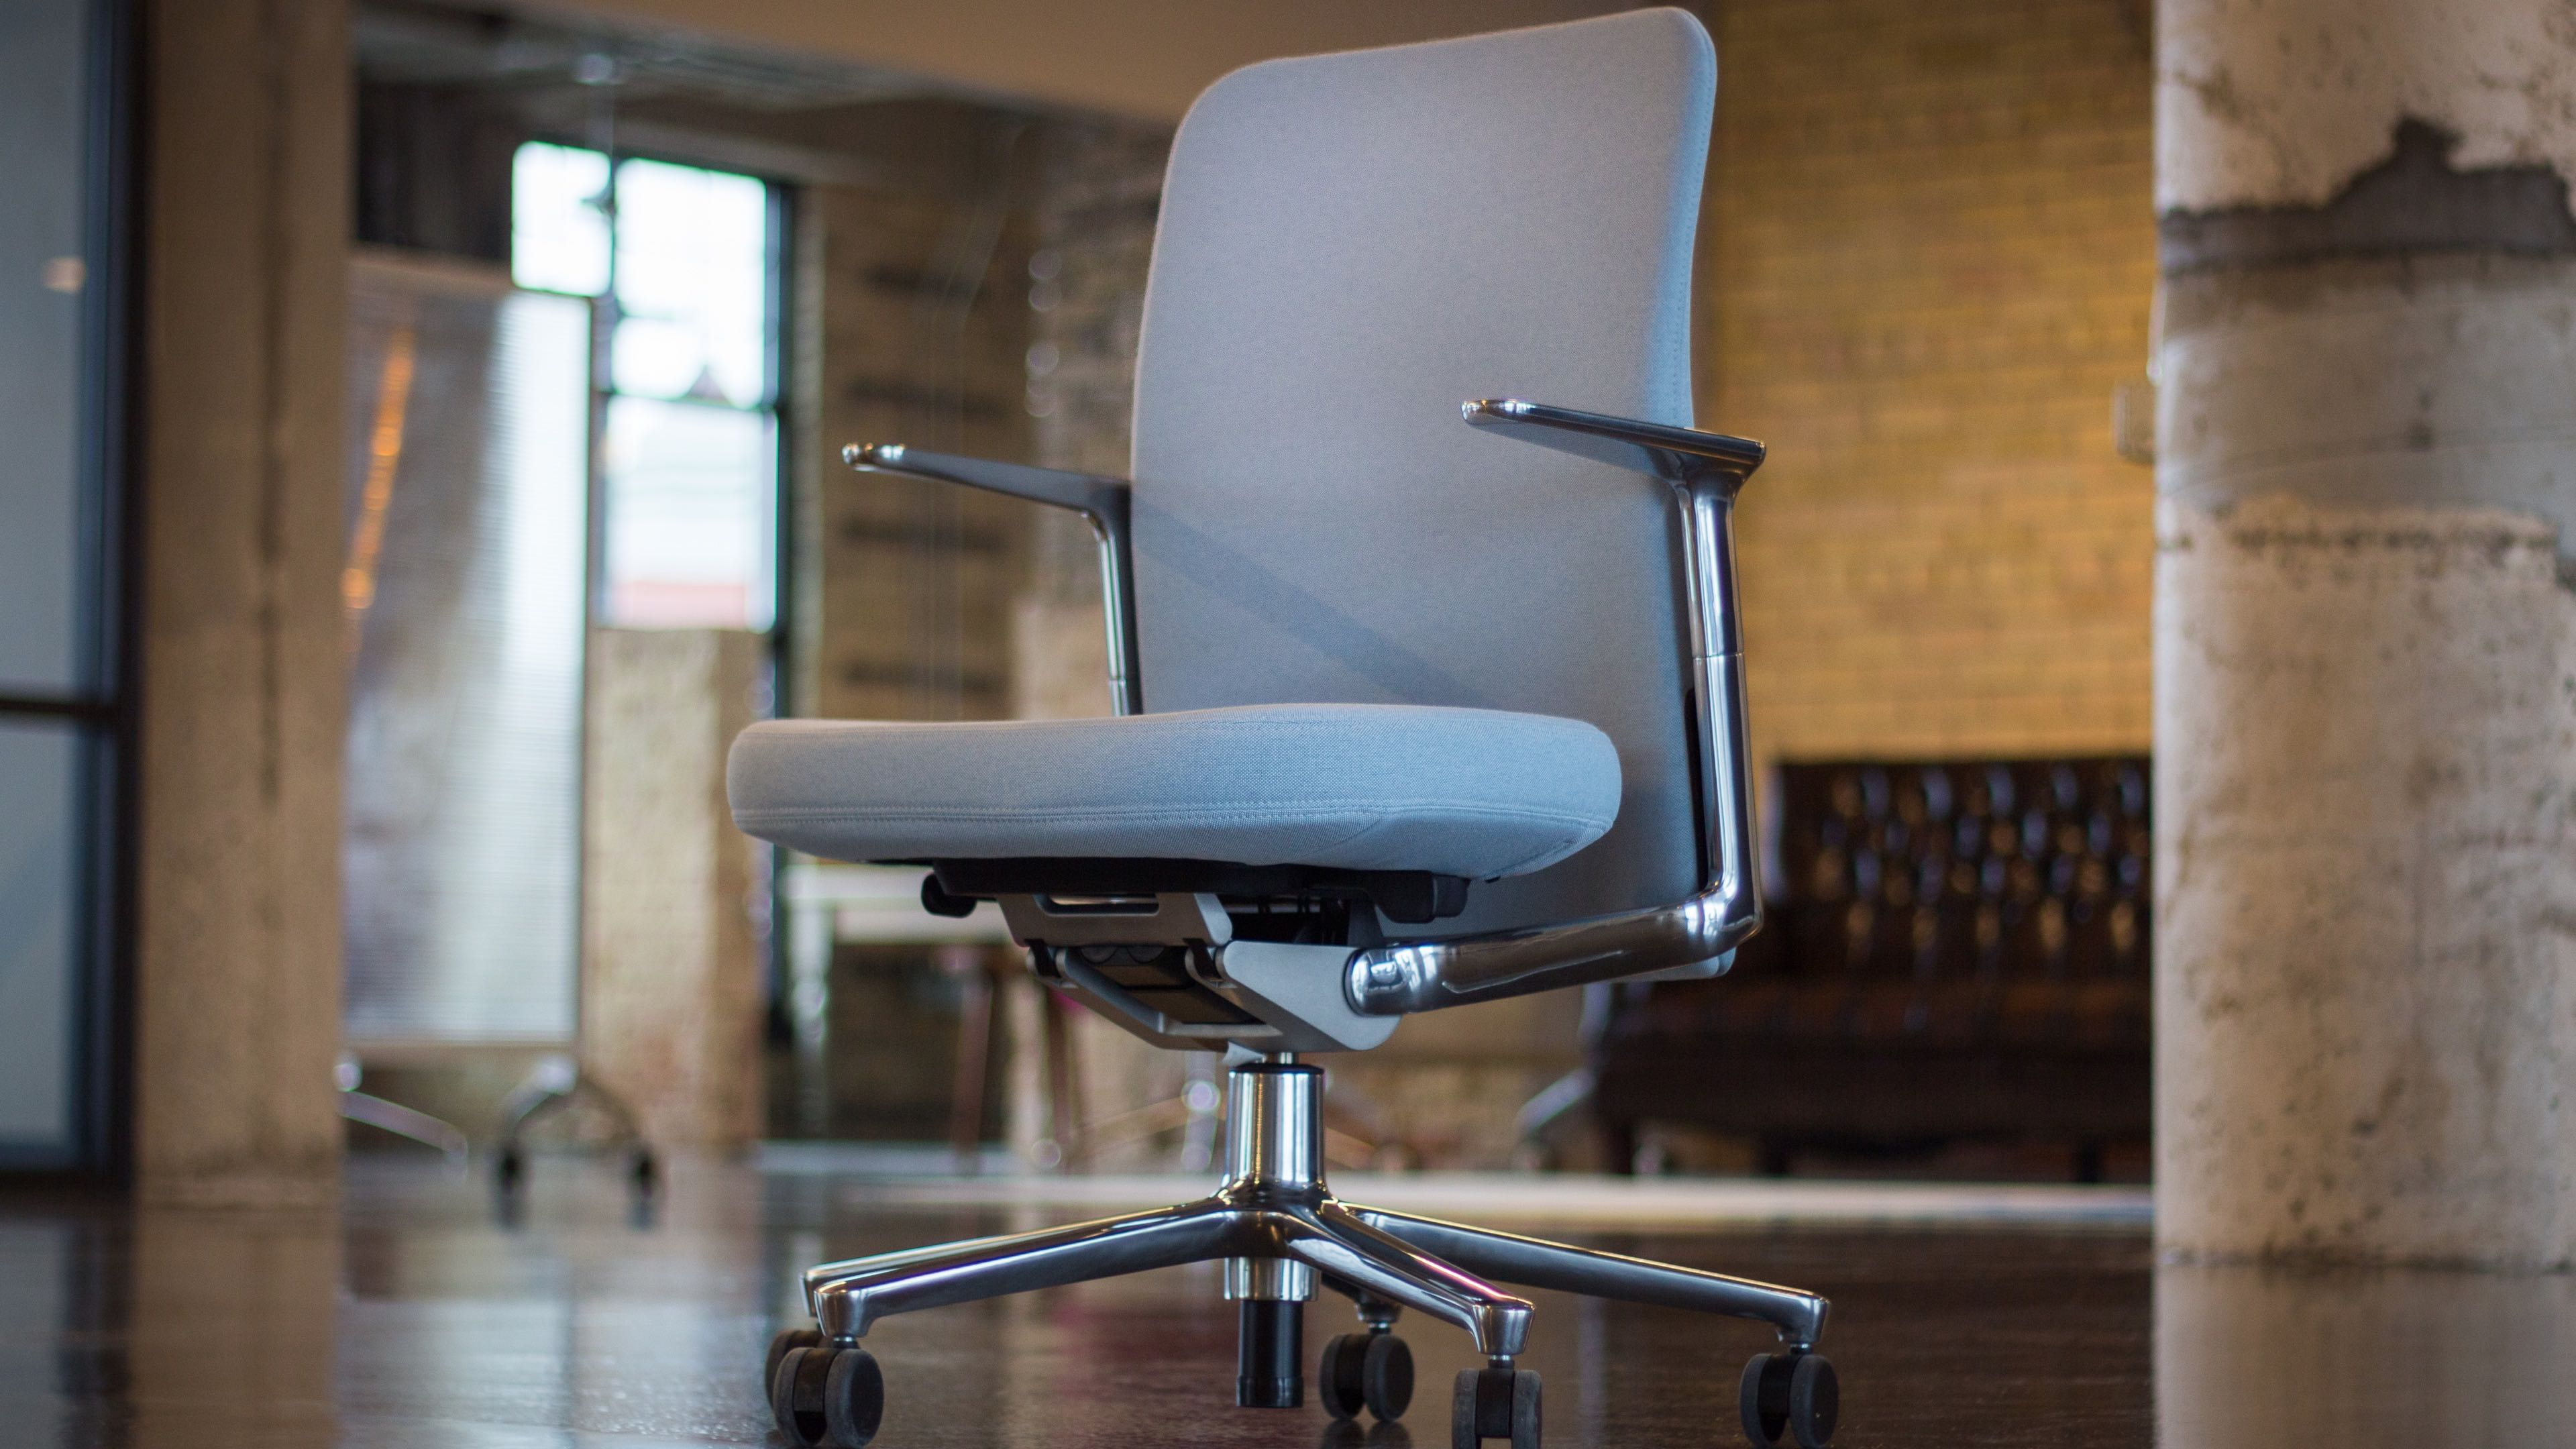 vitra ergonomic chair roman training review living with s pacific jony ive choice for apple park